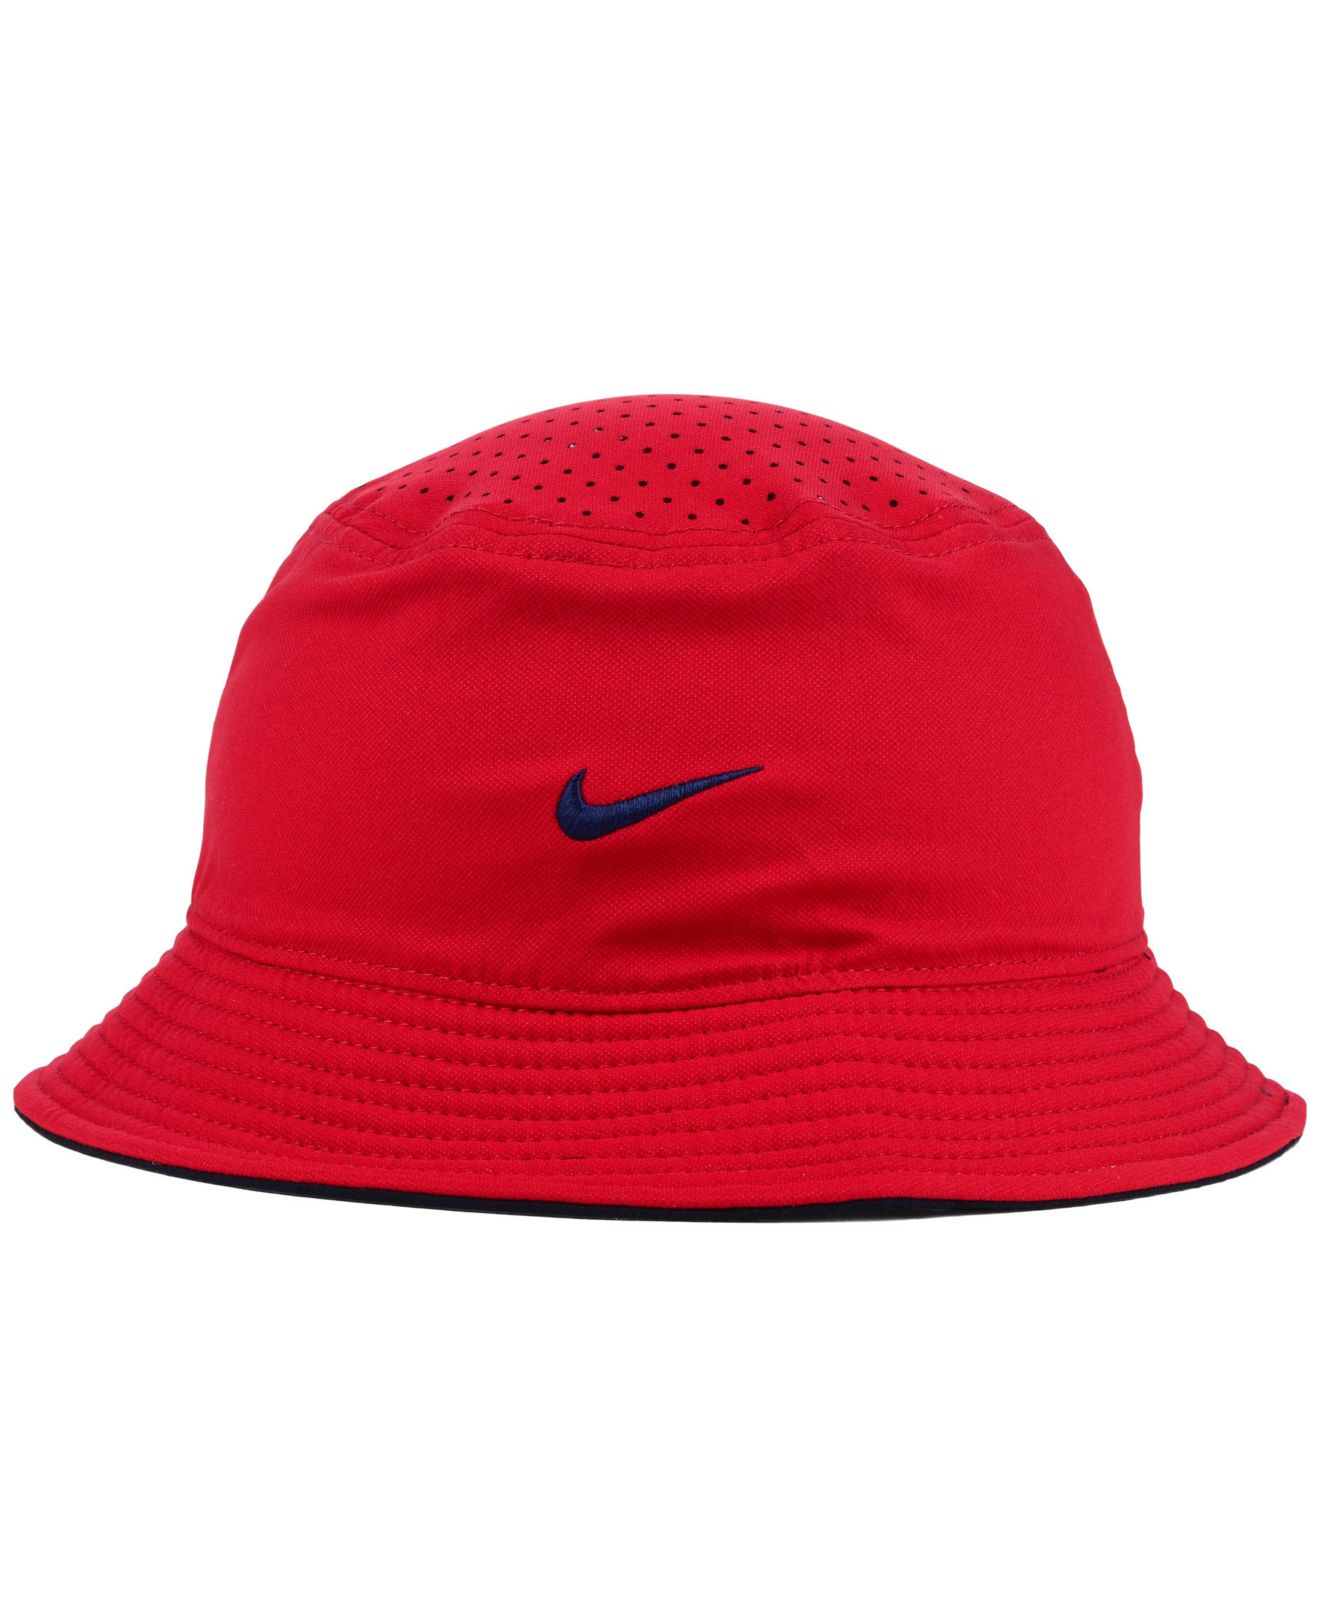 Lyst - Nike St. Louis Cardinals Vapor Dri-Fit Bucket Hat in Red for Men d1282932c47